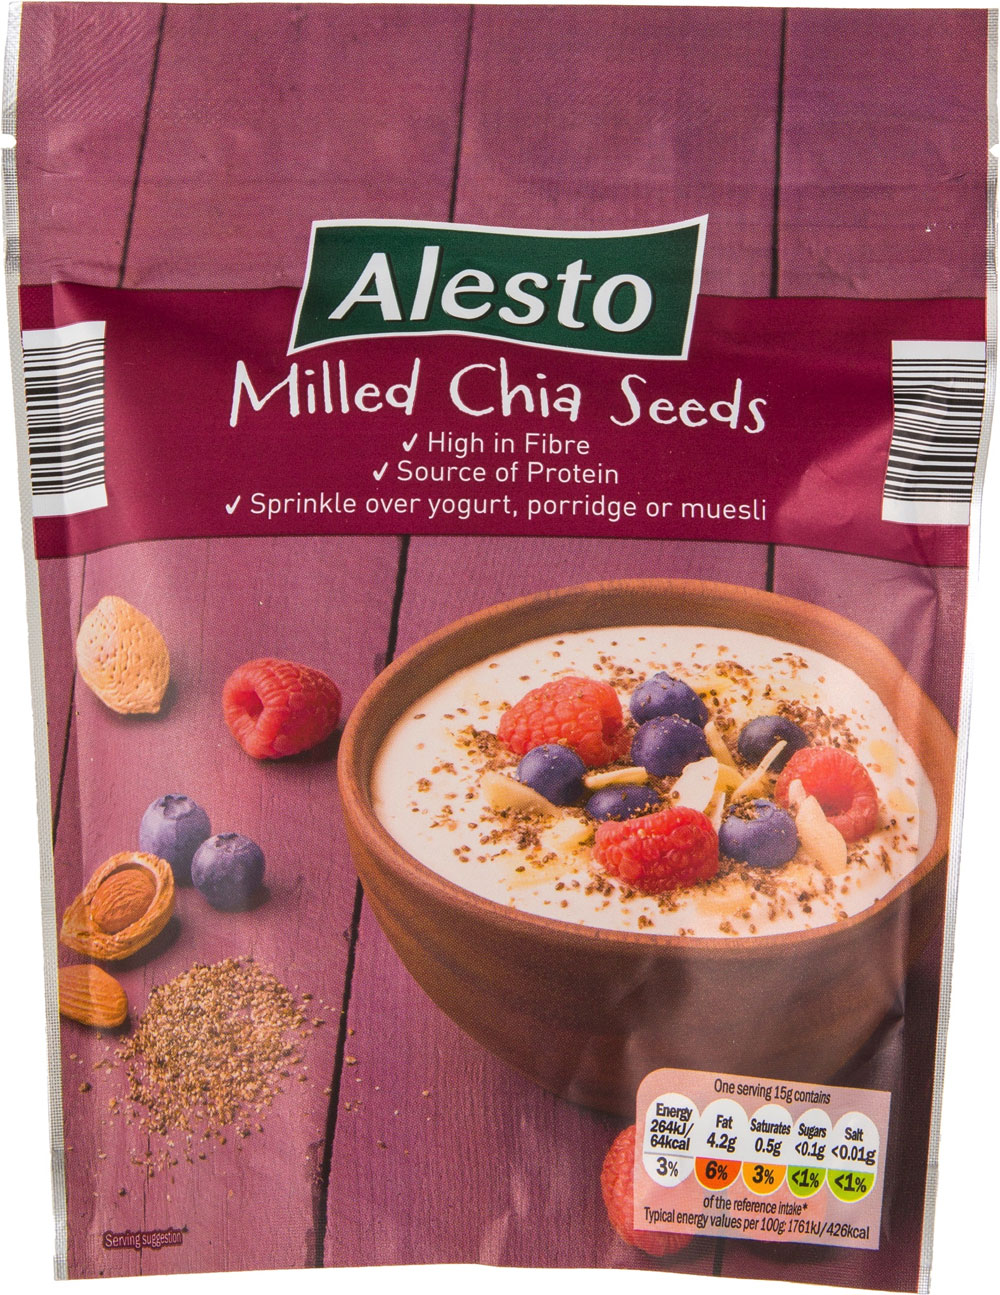 Alesto Milled Chia Seeds 200gm Price in Pakistan